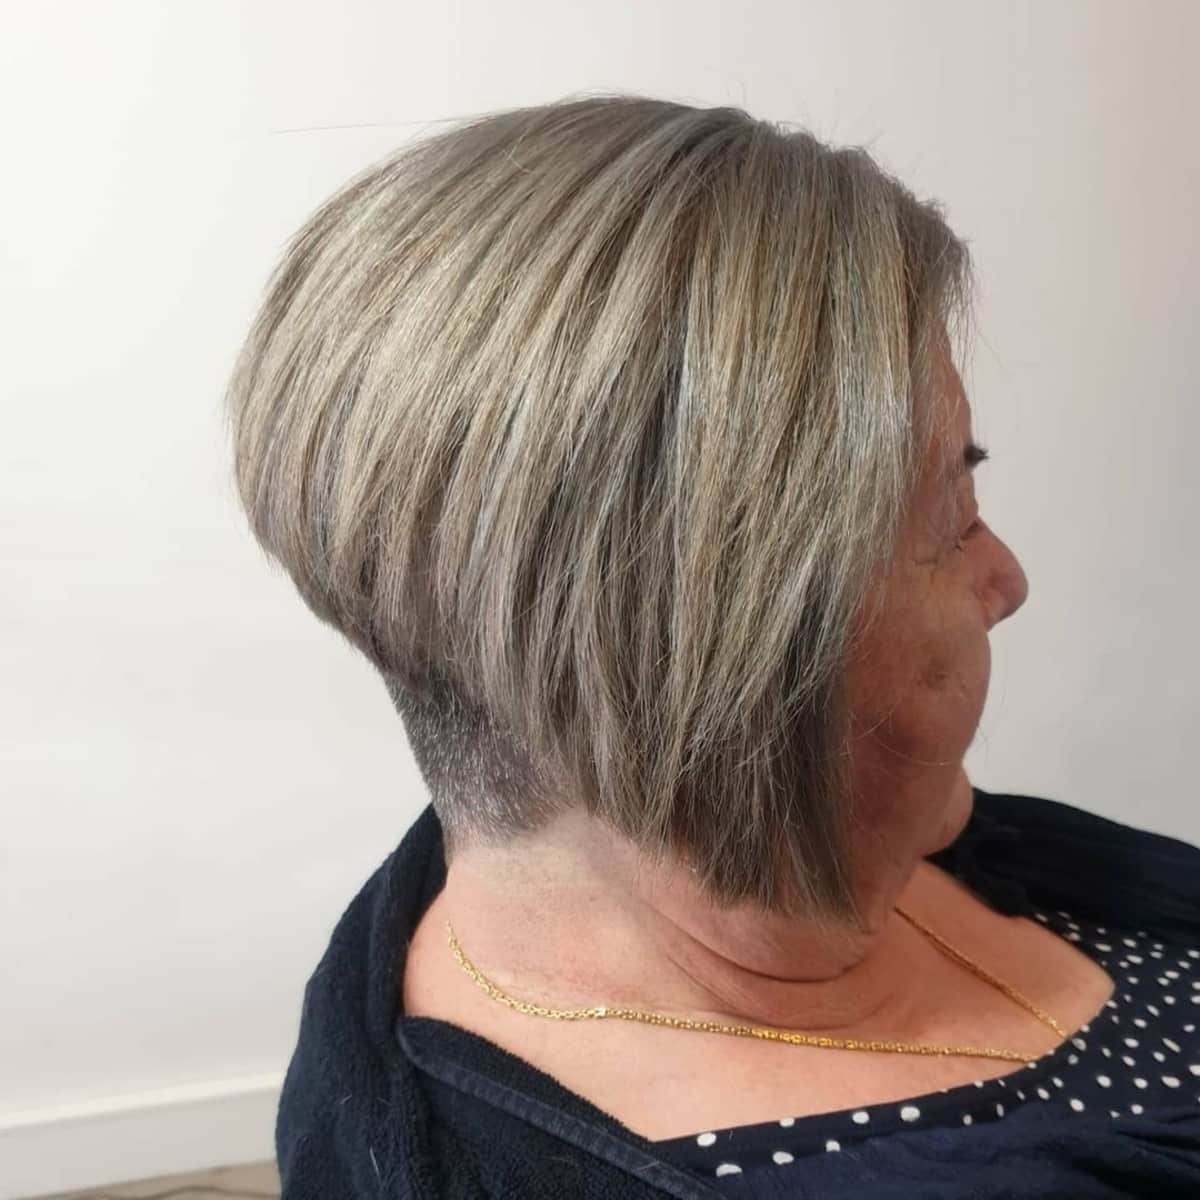 20 Volumizing Short Haircuts for Women Over 60 with Fine Hair